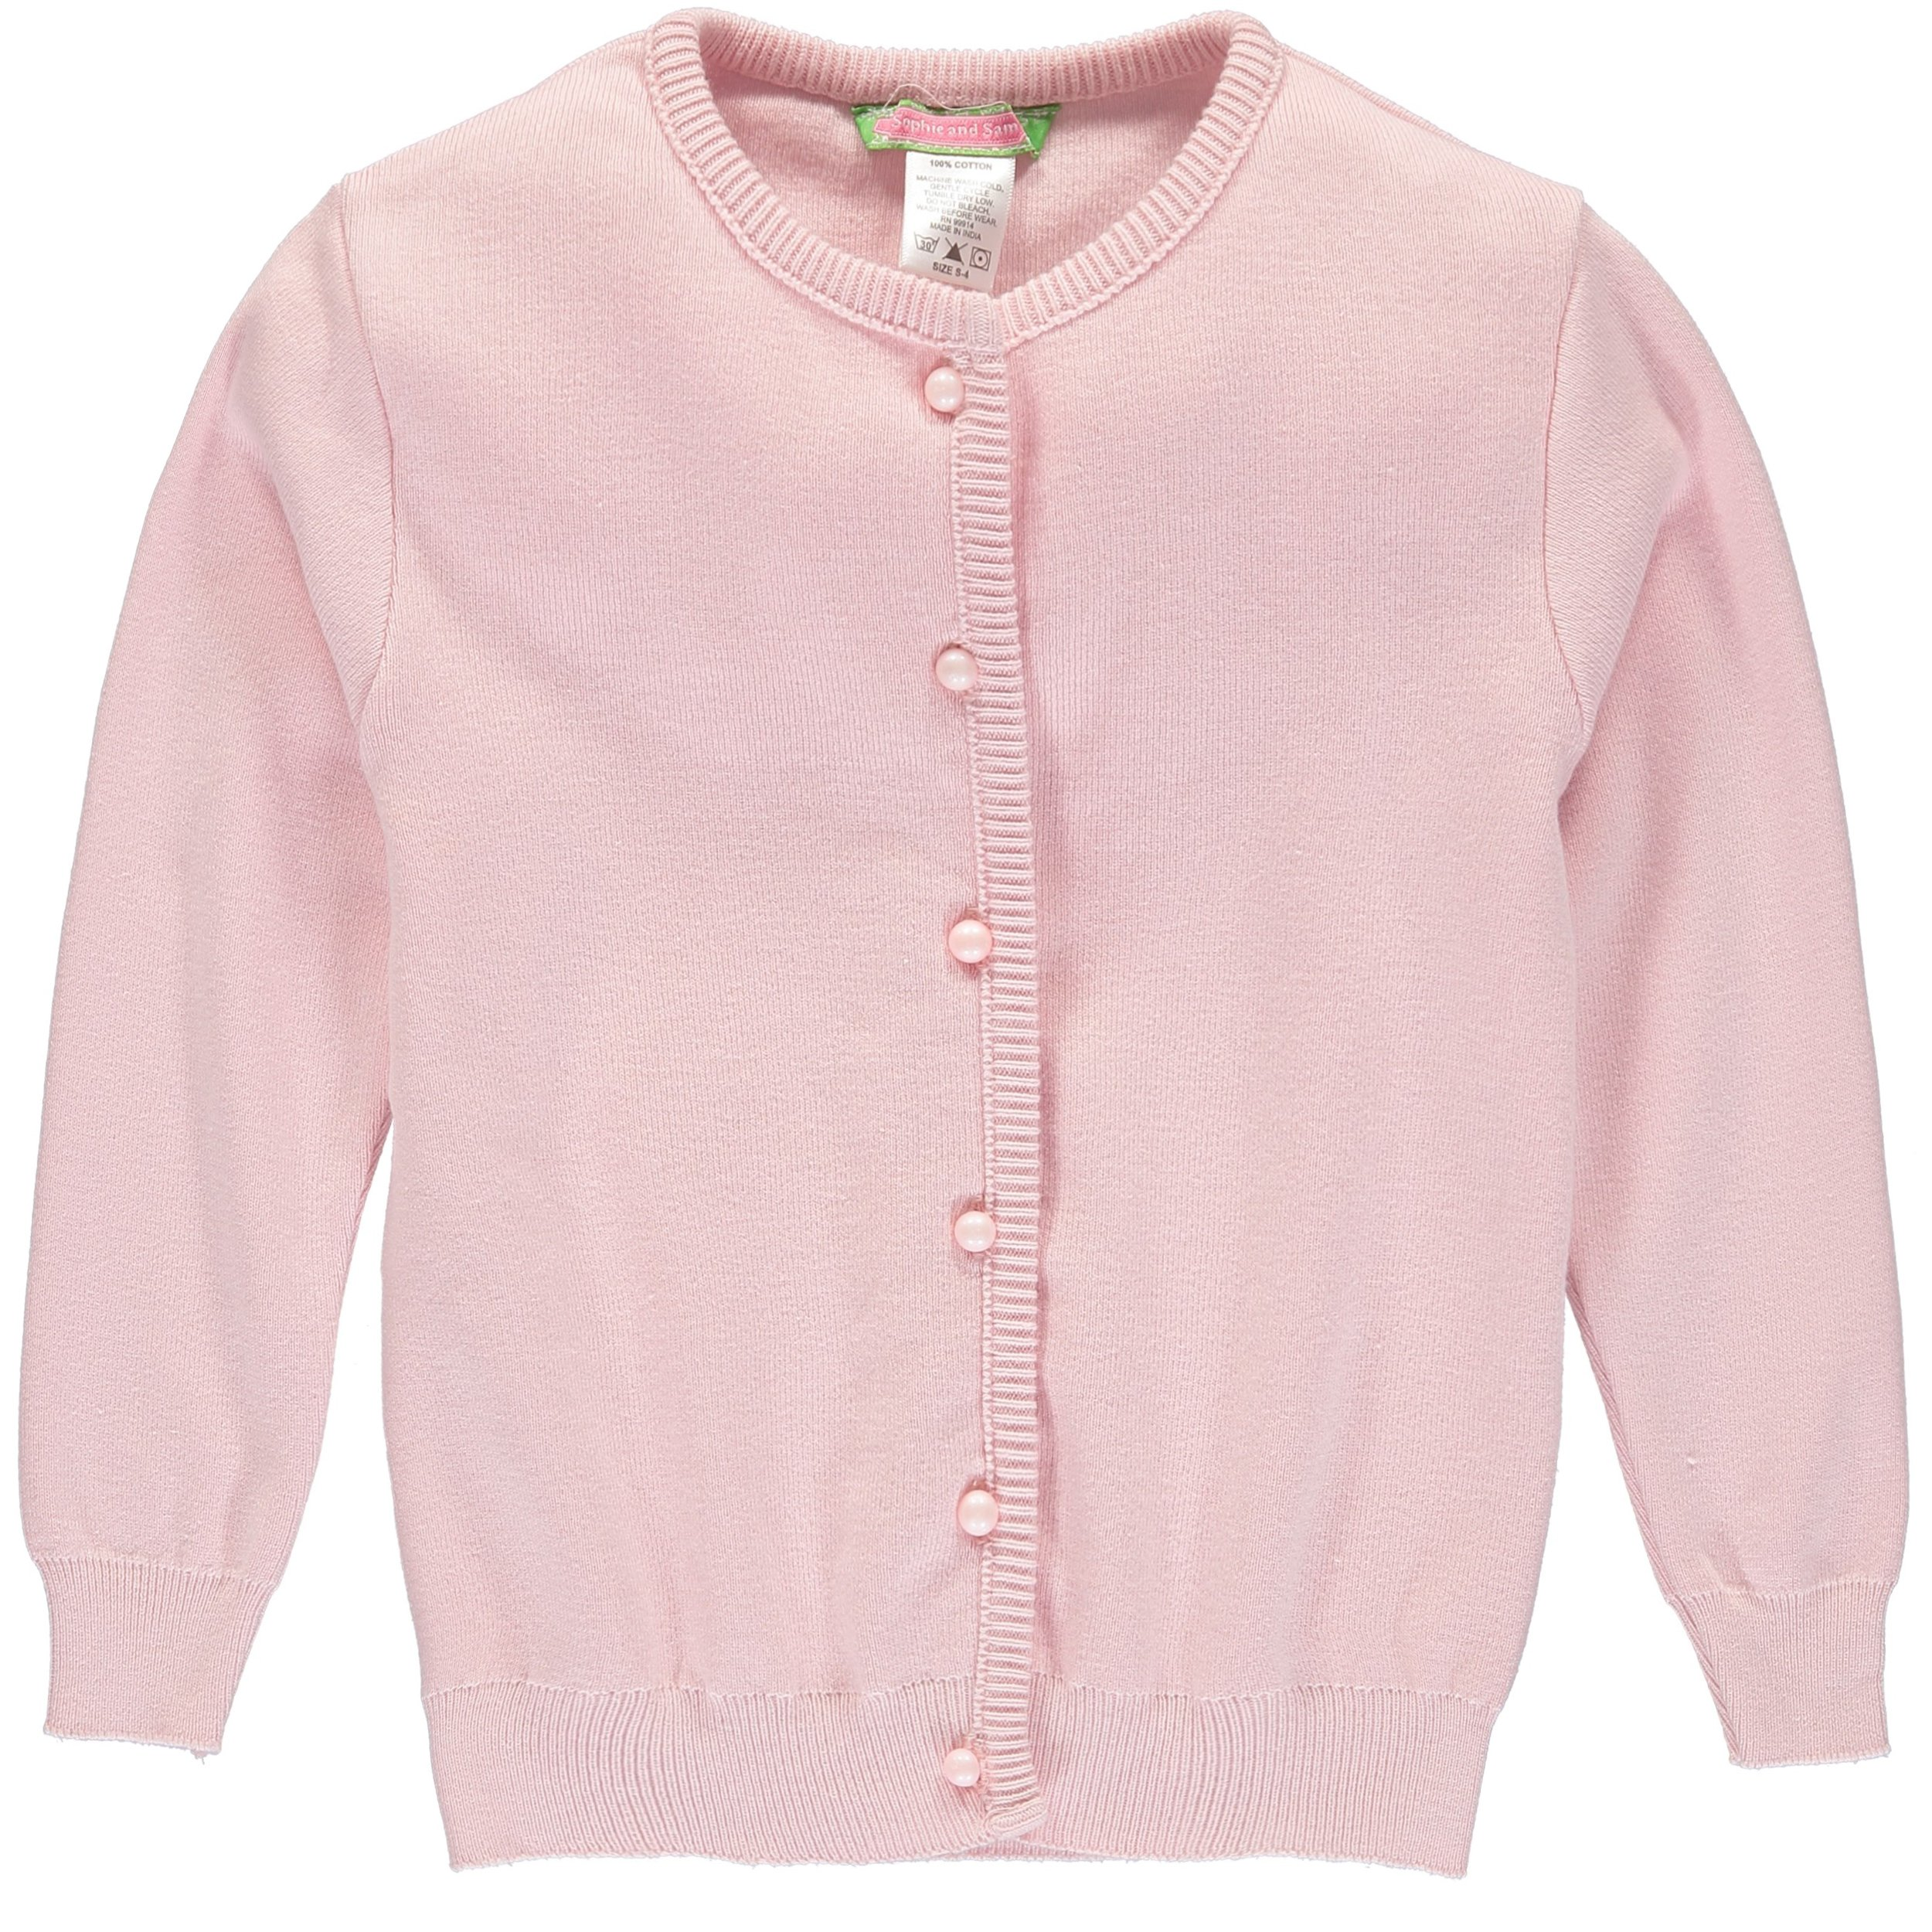 Sophie and Sam Girls' Soft Knit Cardigan Sweater (4T, Pink)